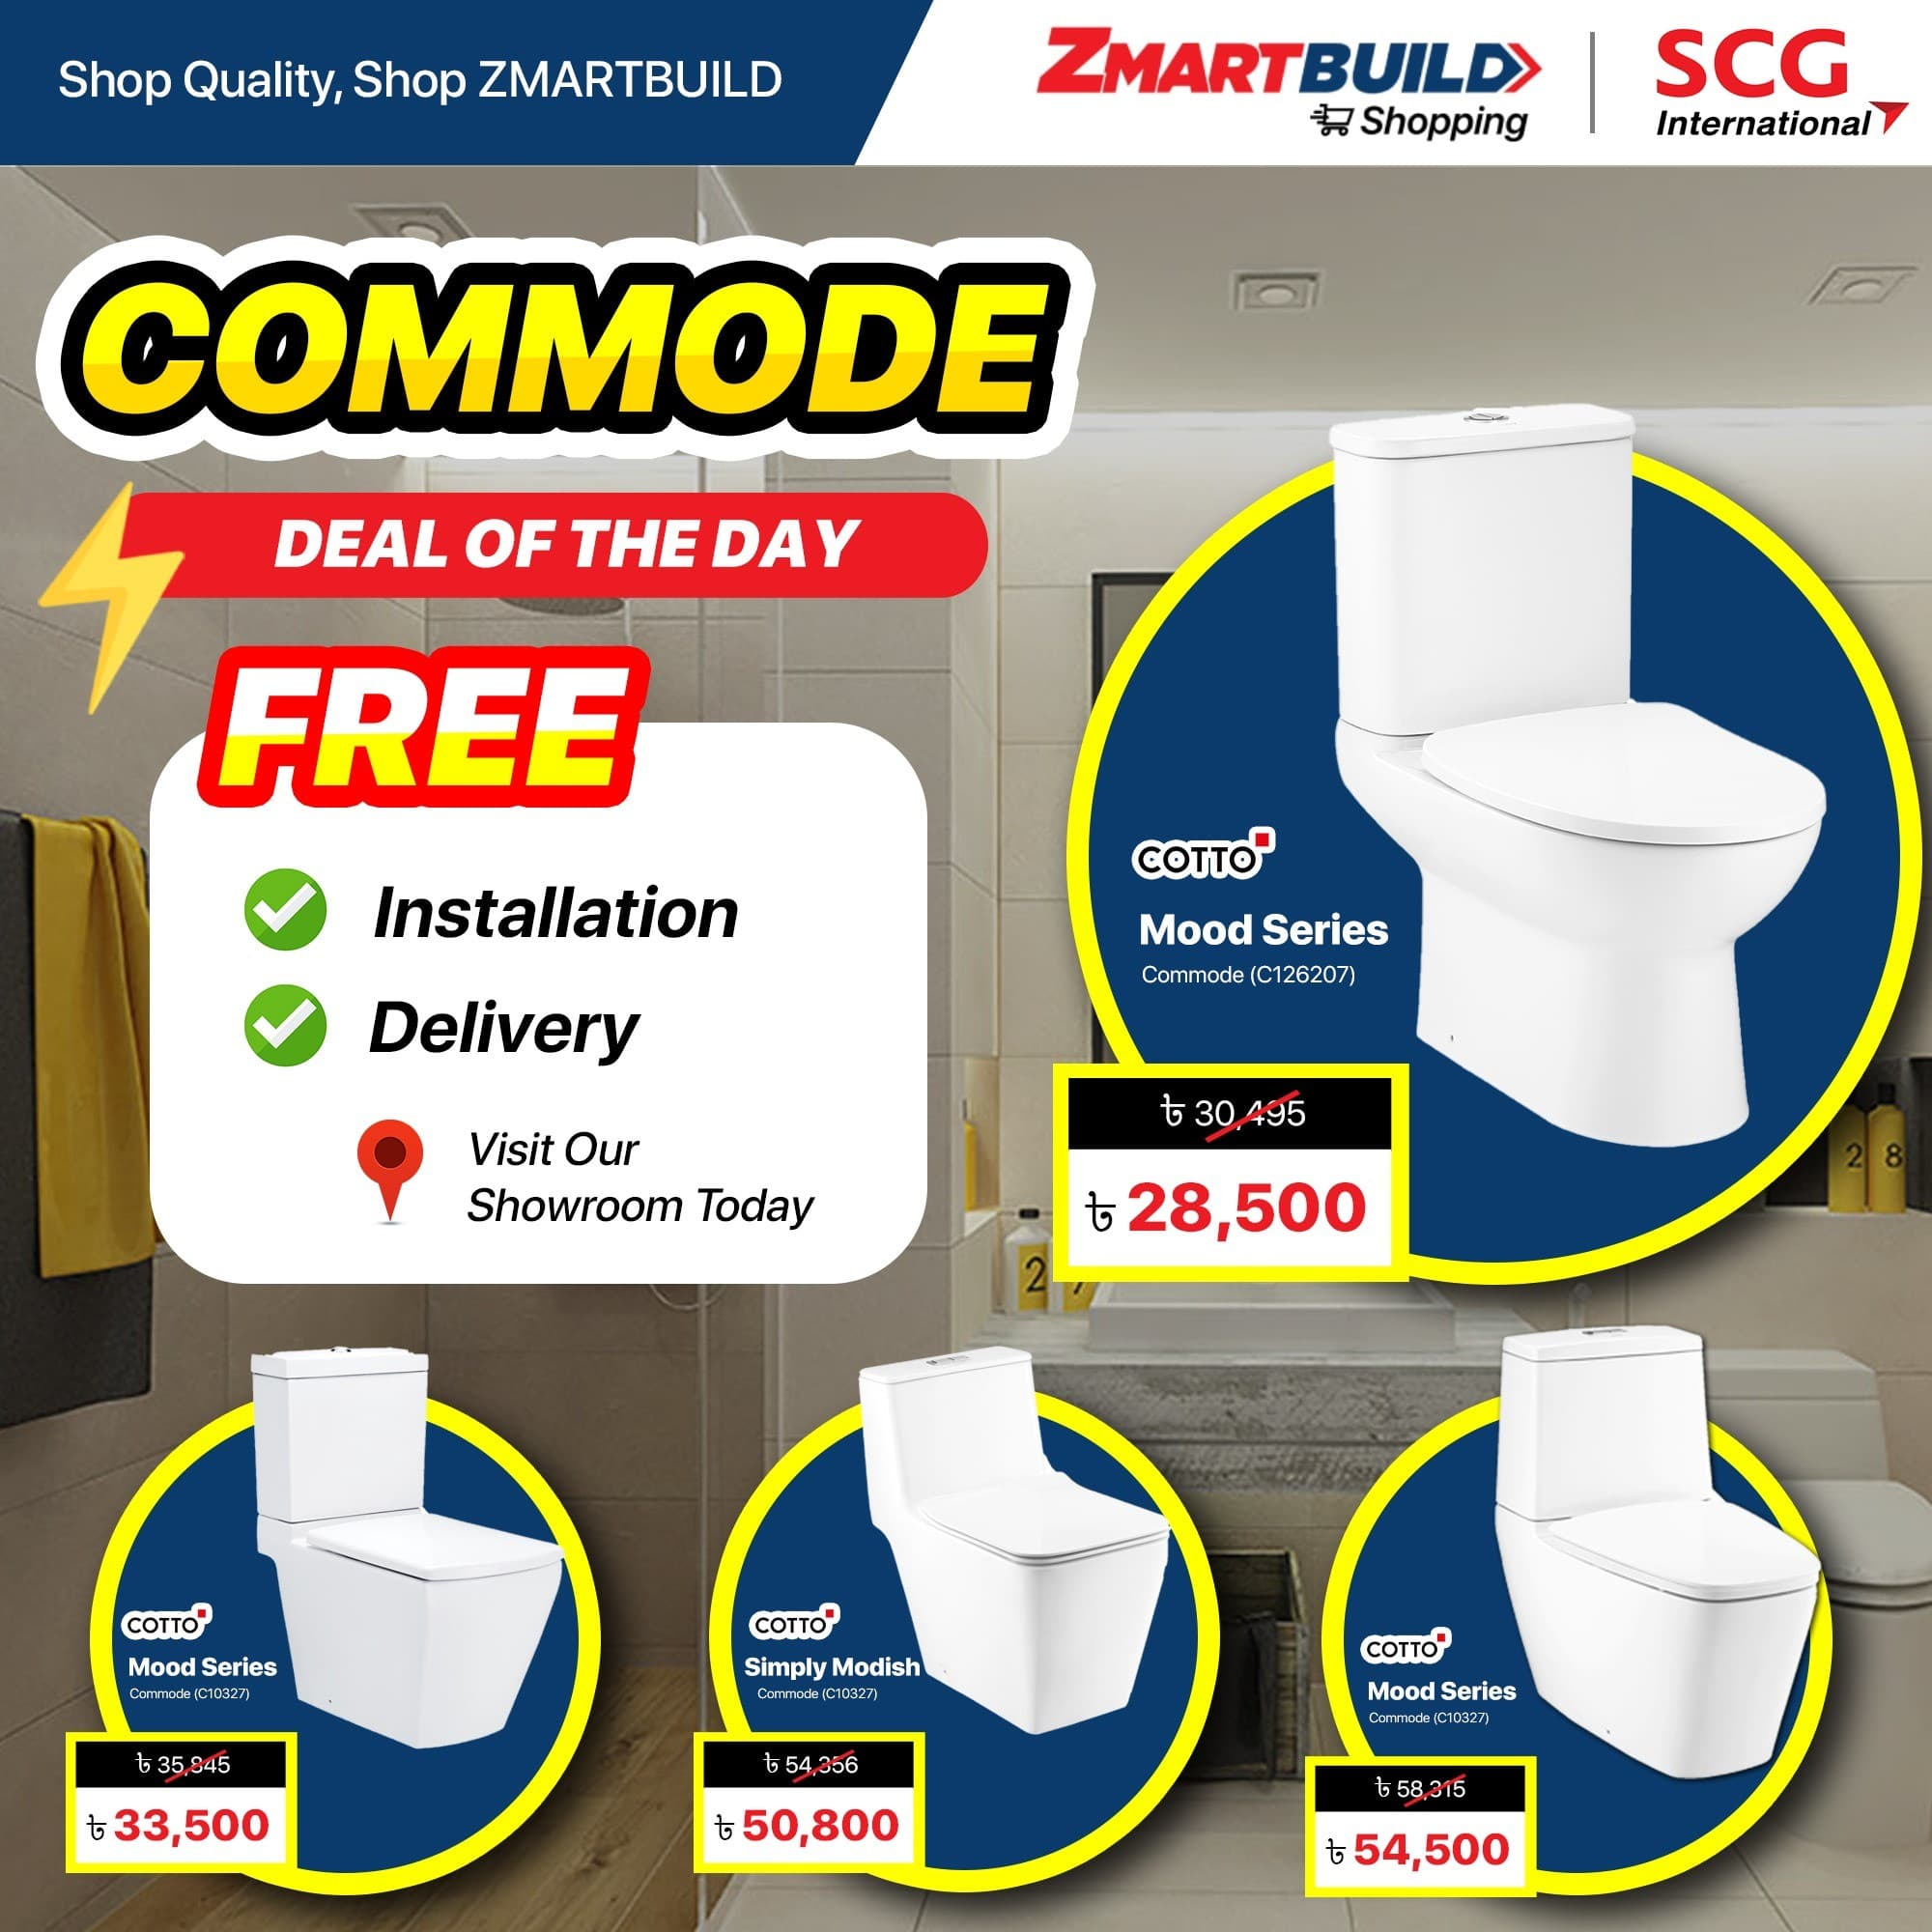 Commode promotion in Oct'20_1